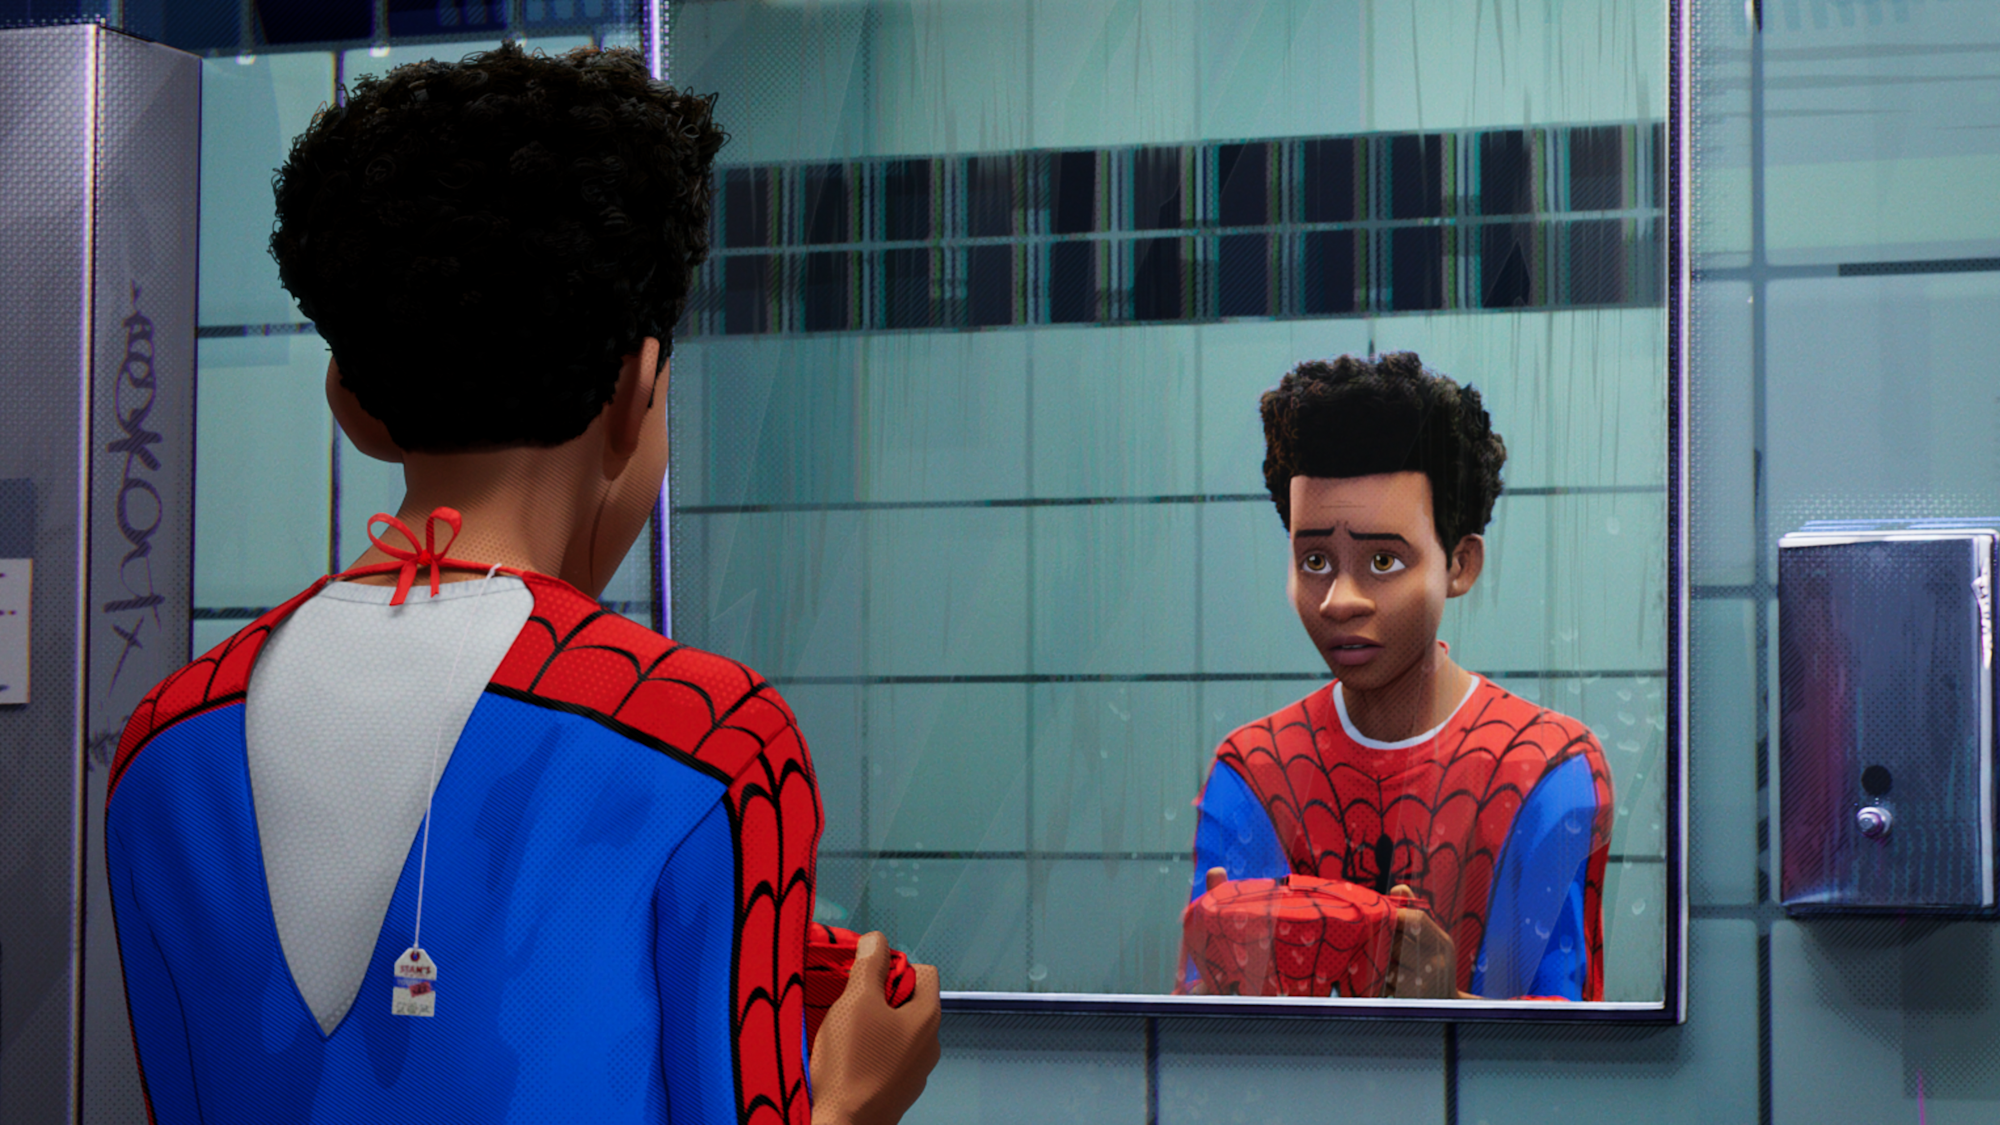 Directing team for Spider-Man: Into The Spider-Verse sequel revealed